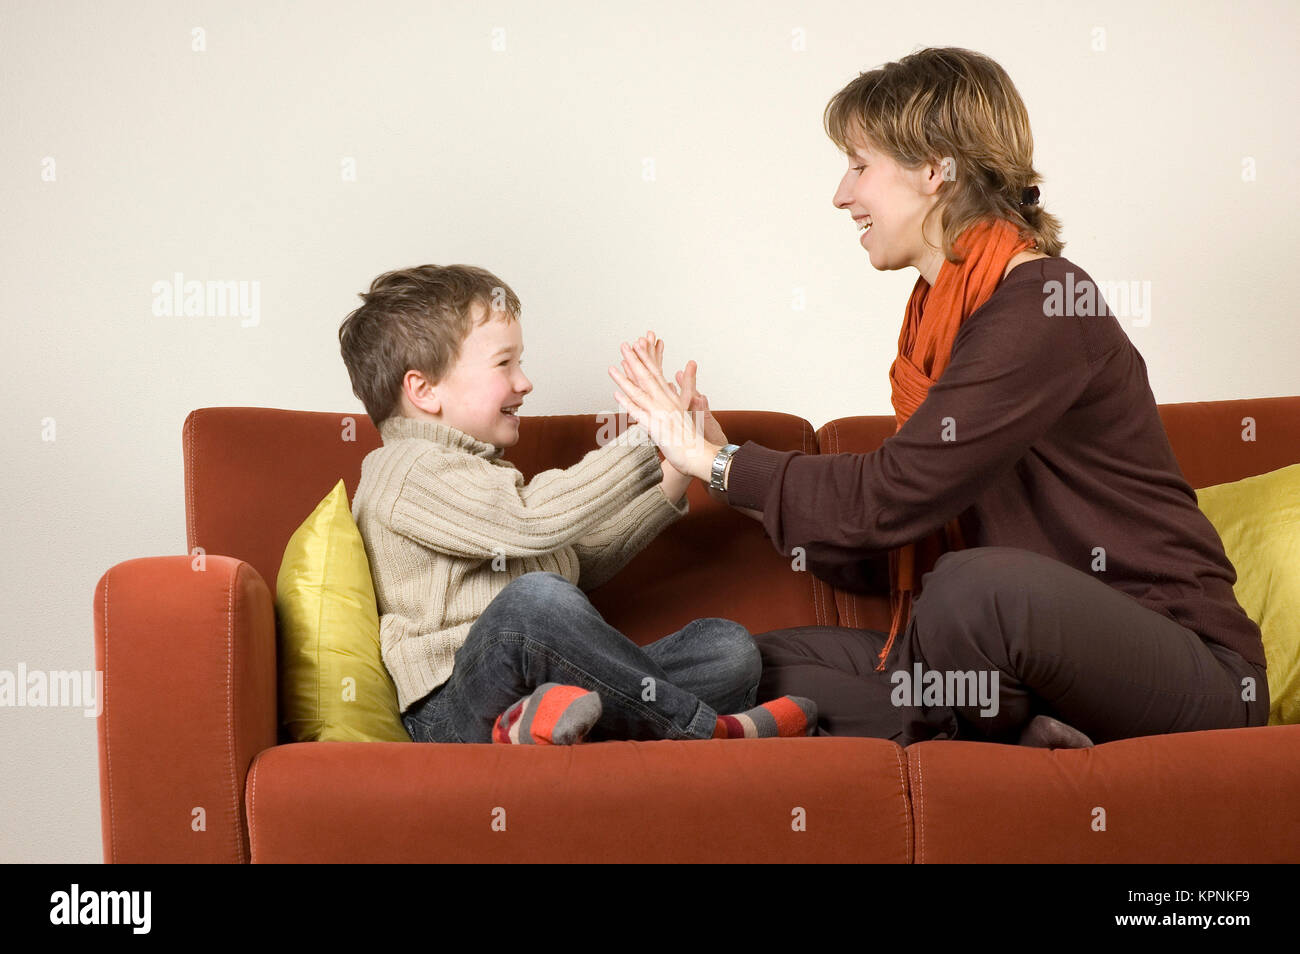 Mother And Son Playing On A Couch - Stock Image